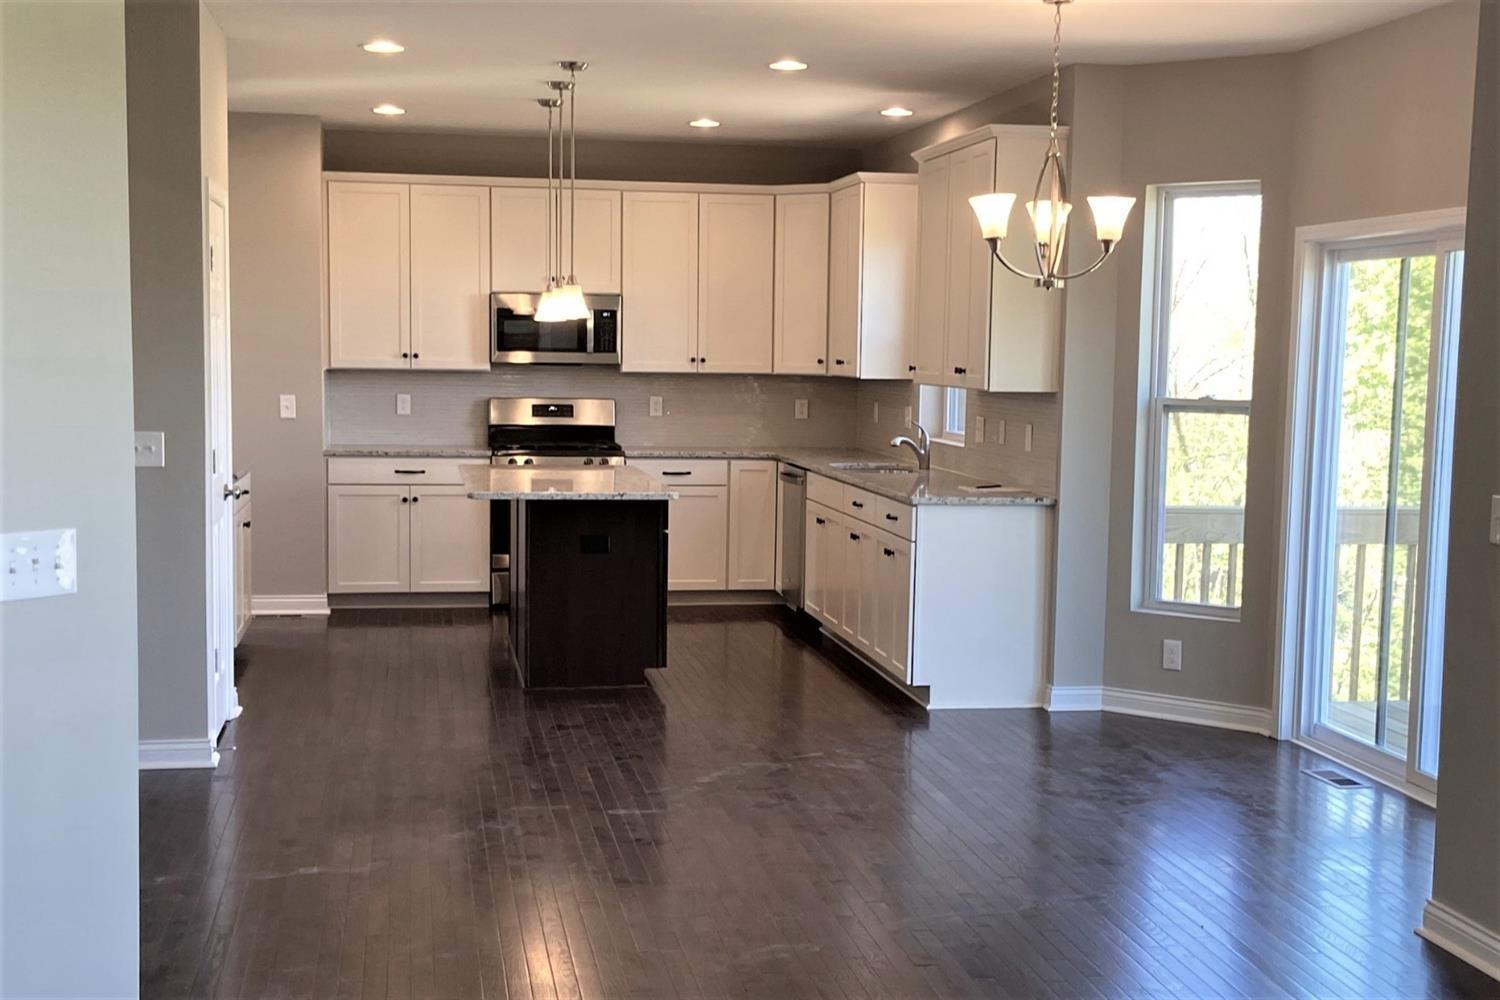 Photo 2 for 5019 Greenshire Dr #5 Green Twp. - Hamilton Co., OH 45002